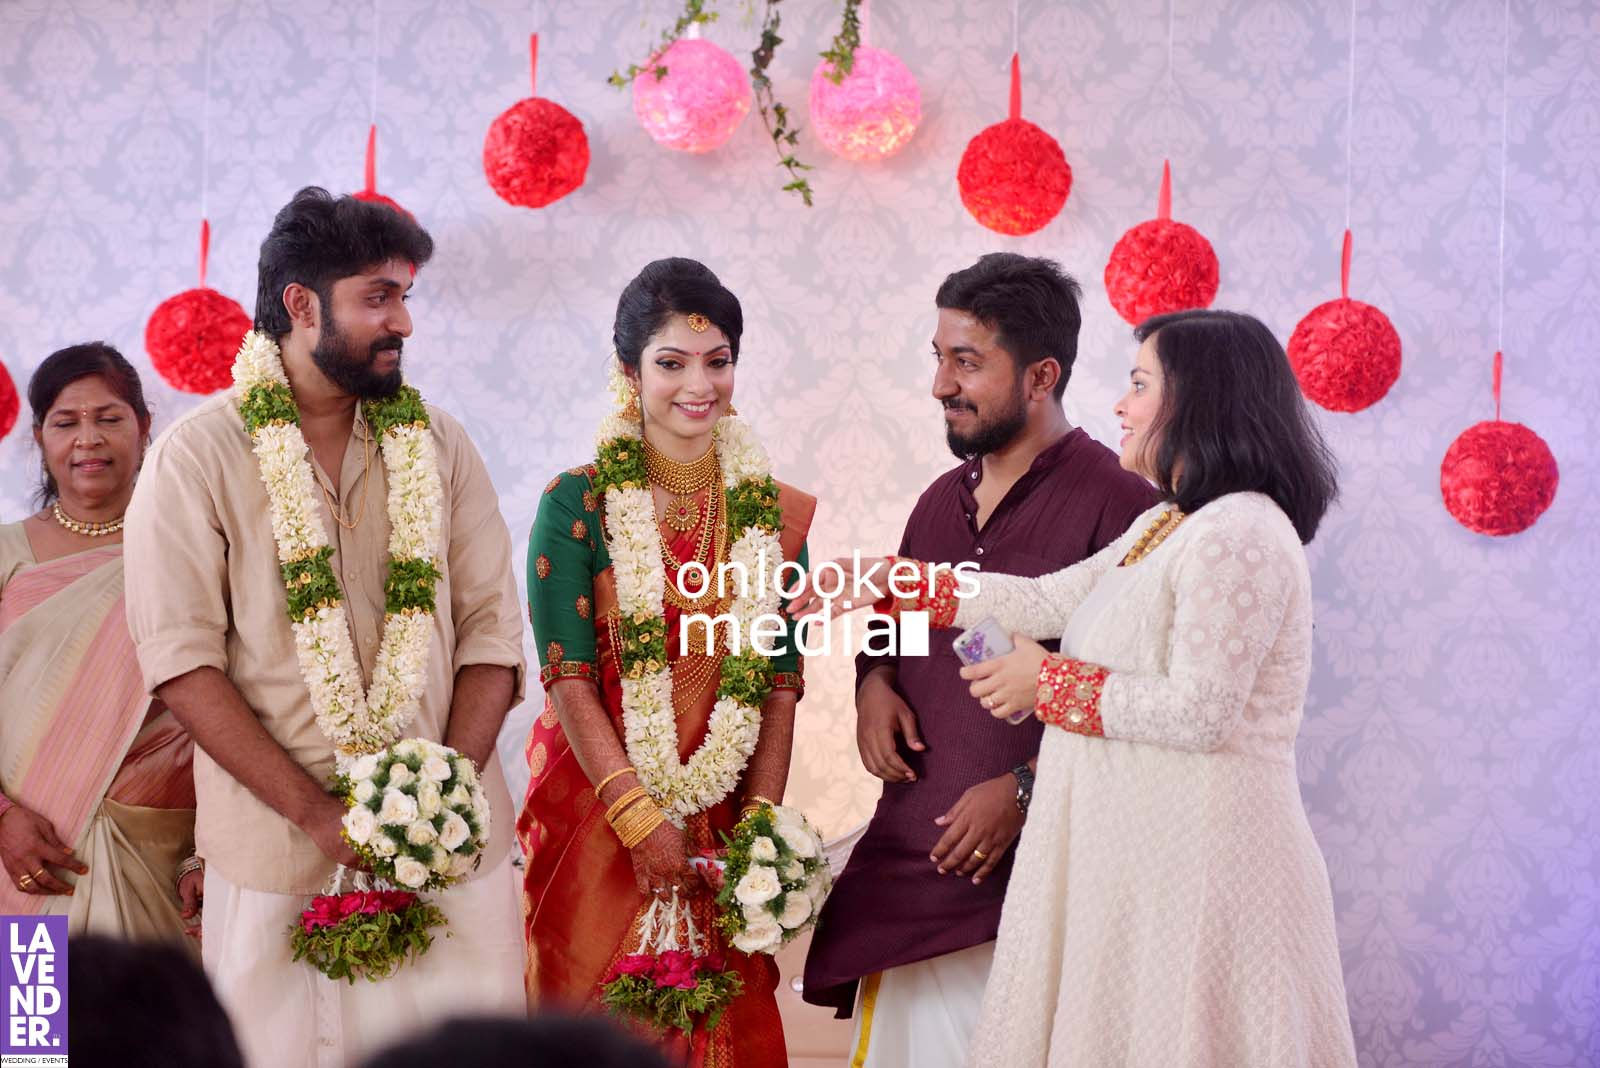 Dhyan Sreenivasan, Dhyan Sreenivasan wedding stills photos, arpita sebastian, Dhyan Sreenivasan marriage photos, sreenivasan family, vineeth sreenivasan wife